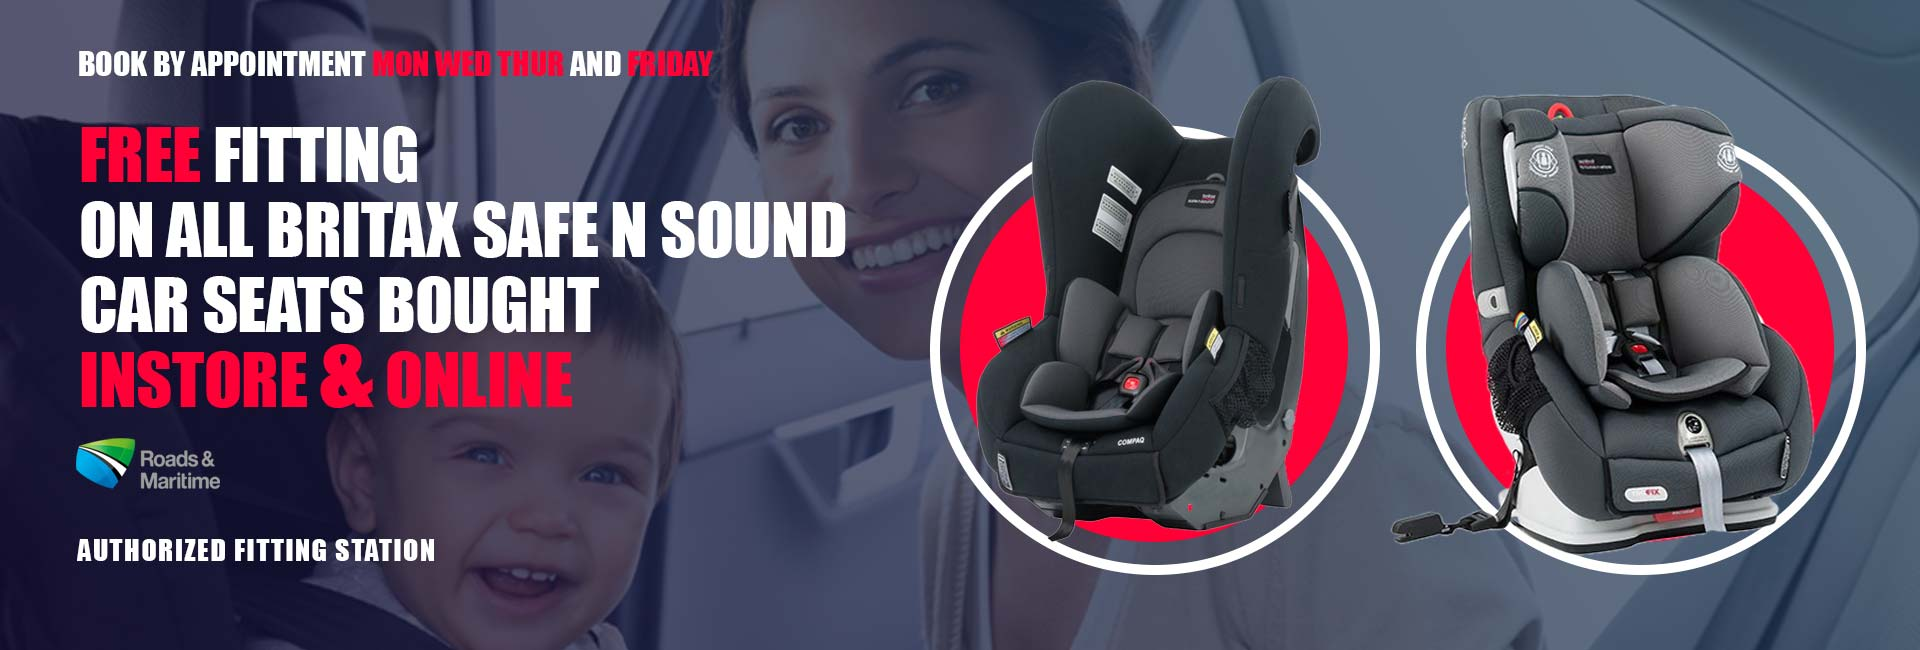 Baby Car Seat Fitting Service Fitting Services Car Seats Baby Barn Discounts